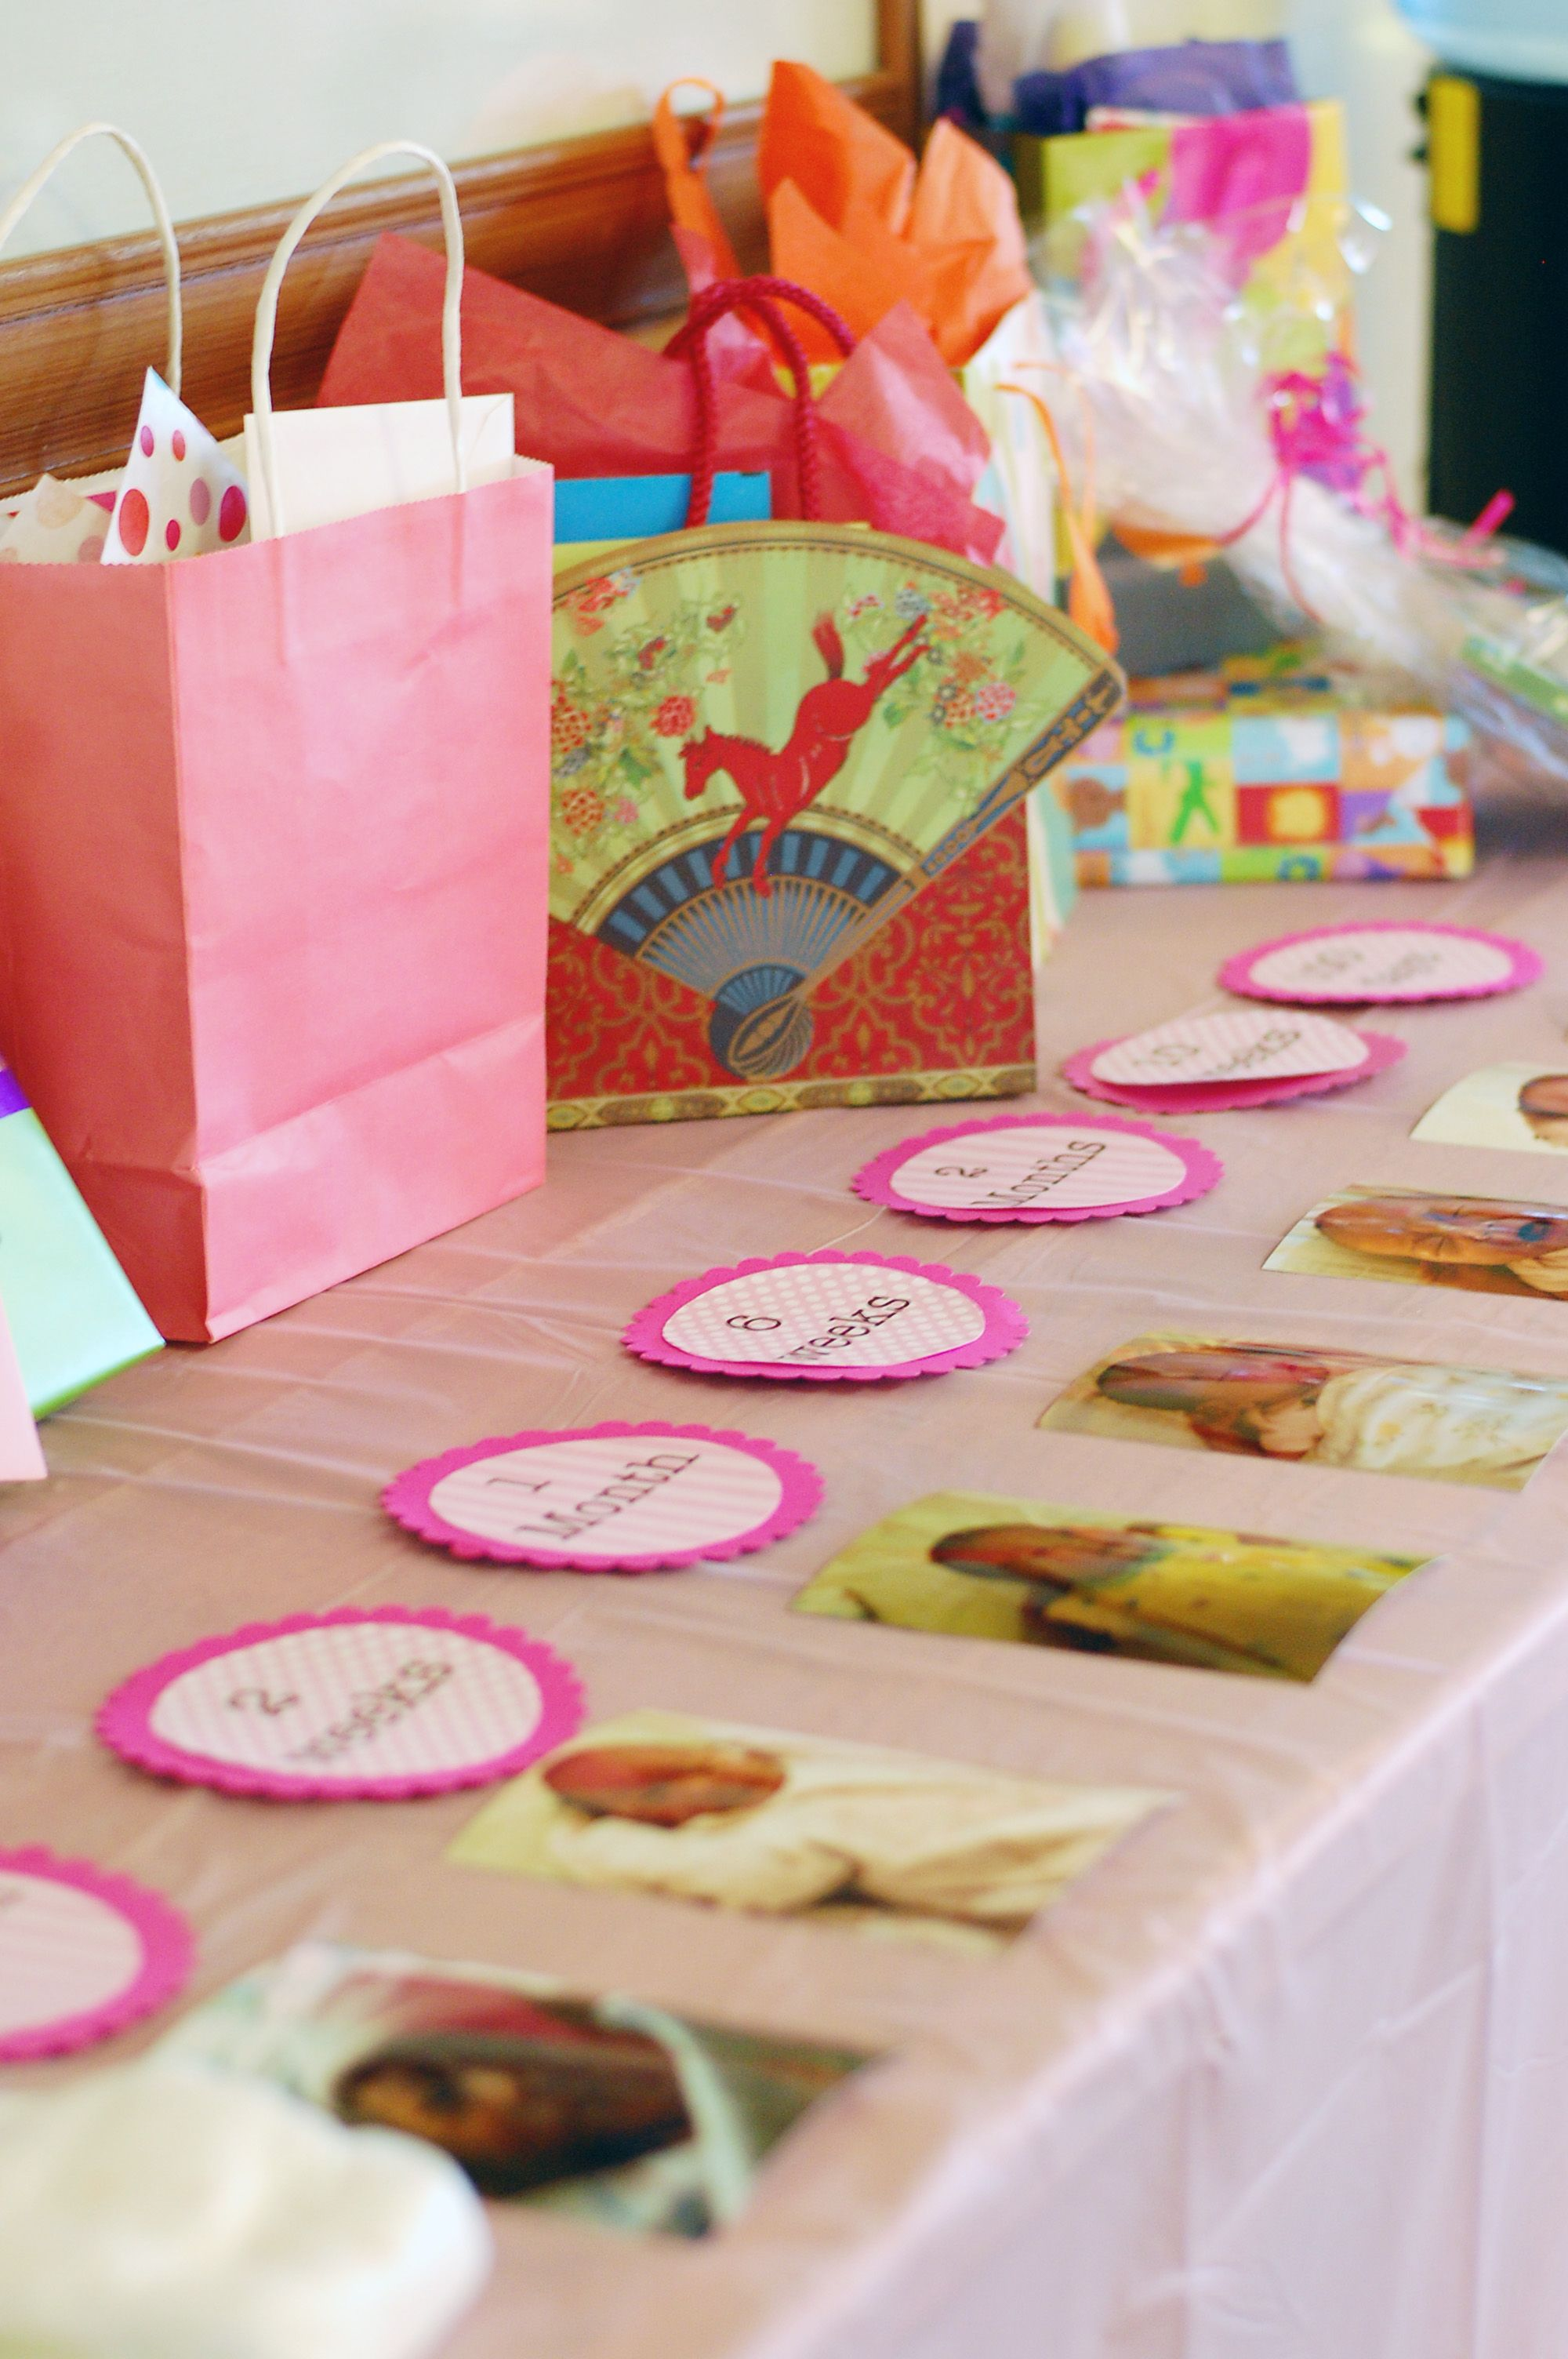 gift table | 100th day "|2000|3008|?|en|2|0b5ea13d41eaf3c1107d1fda7f7a1090|False|UNLIKELY|0.2912033796310425